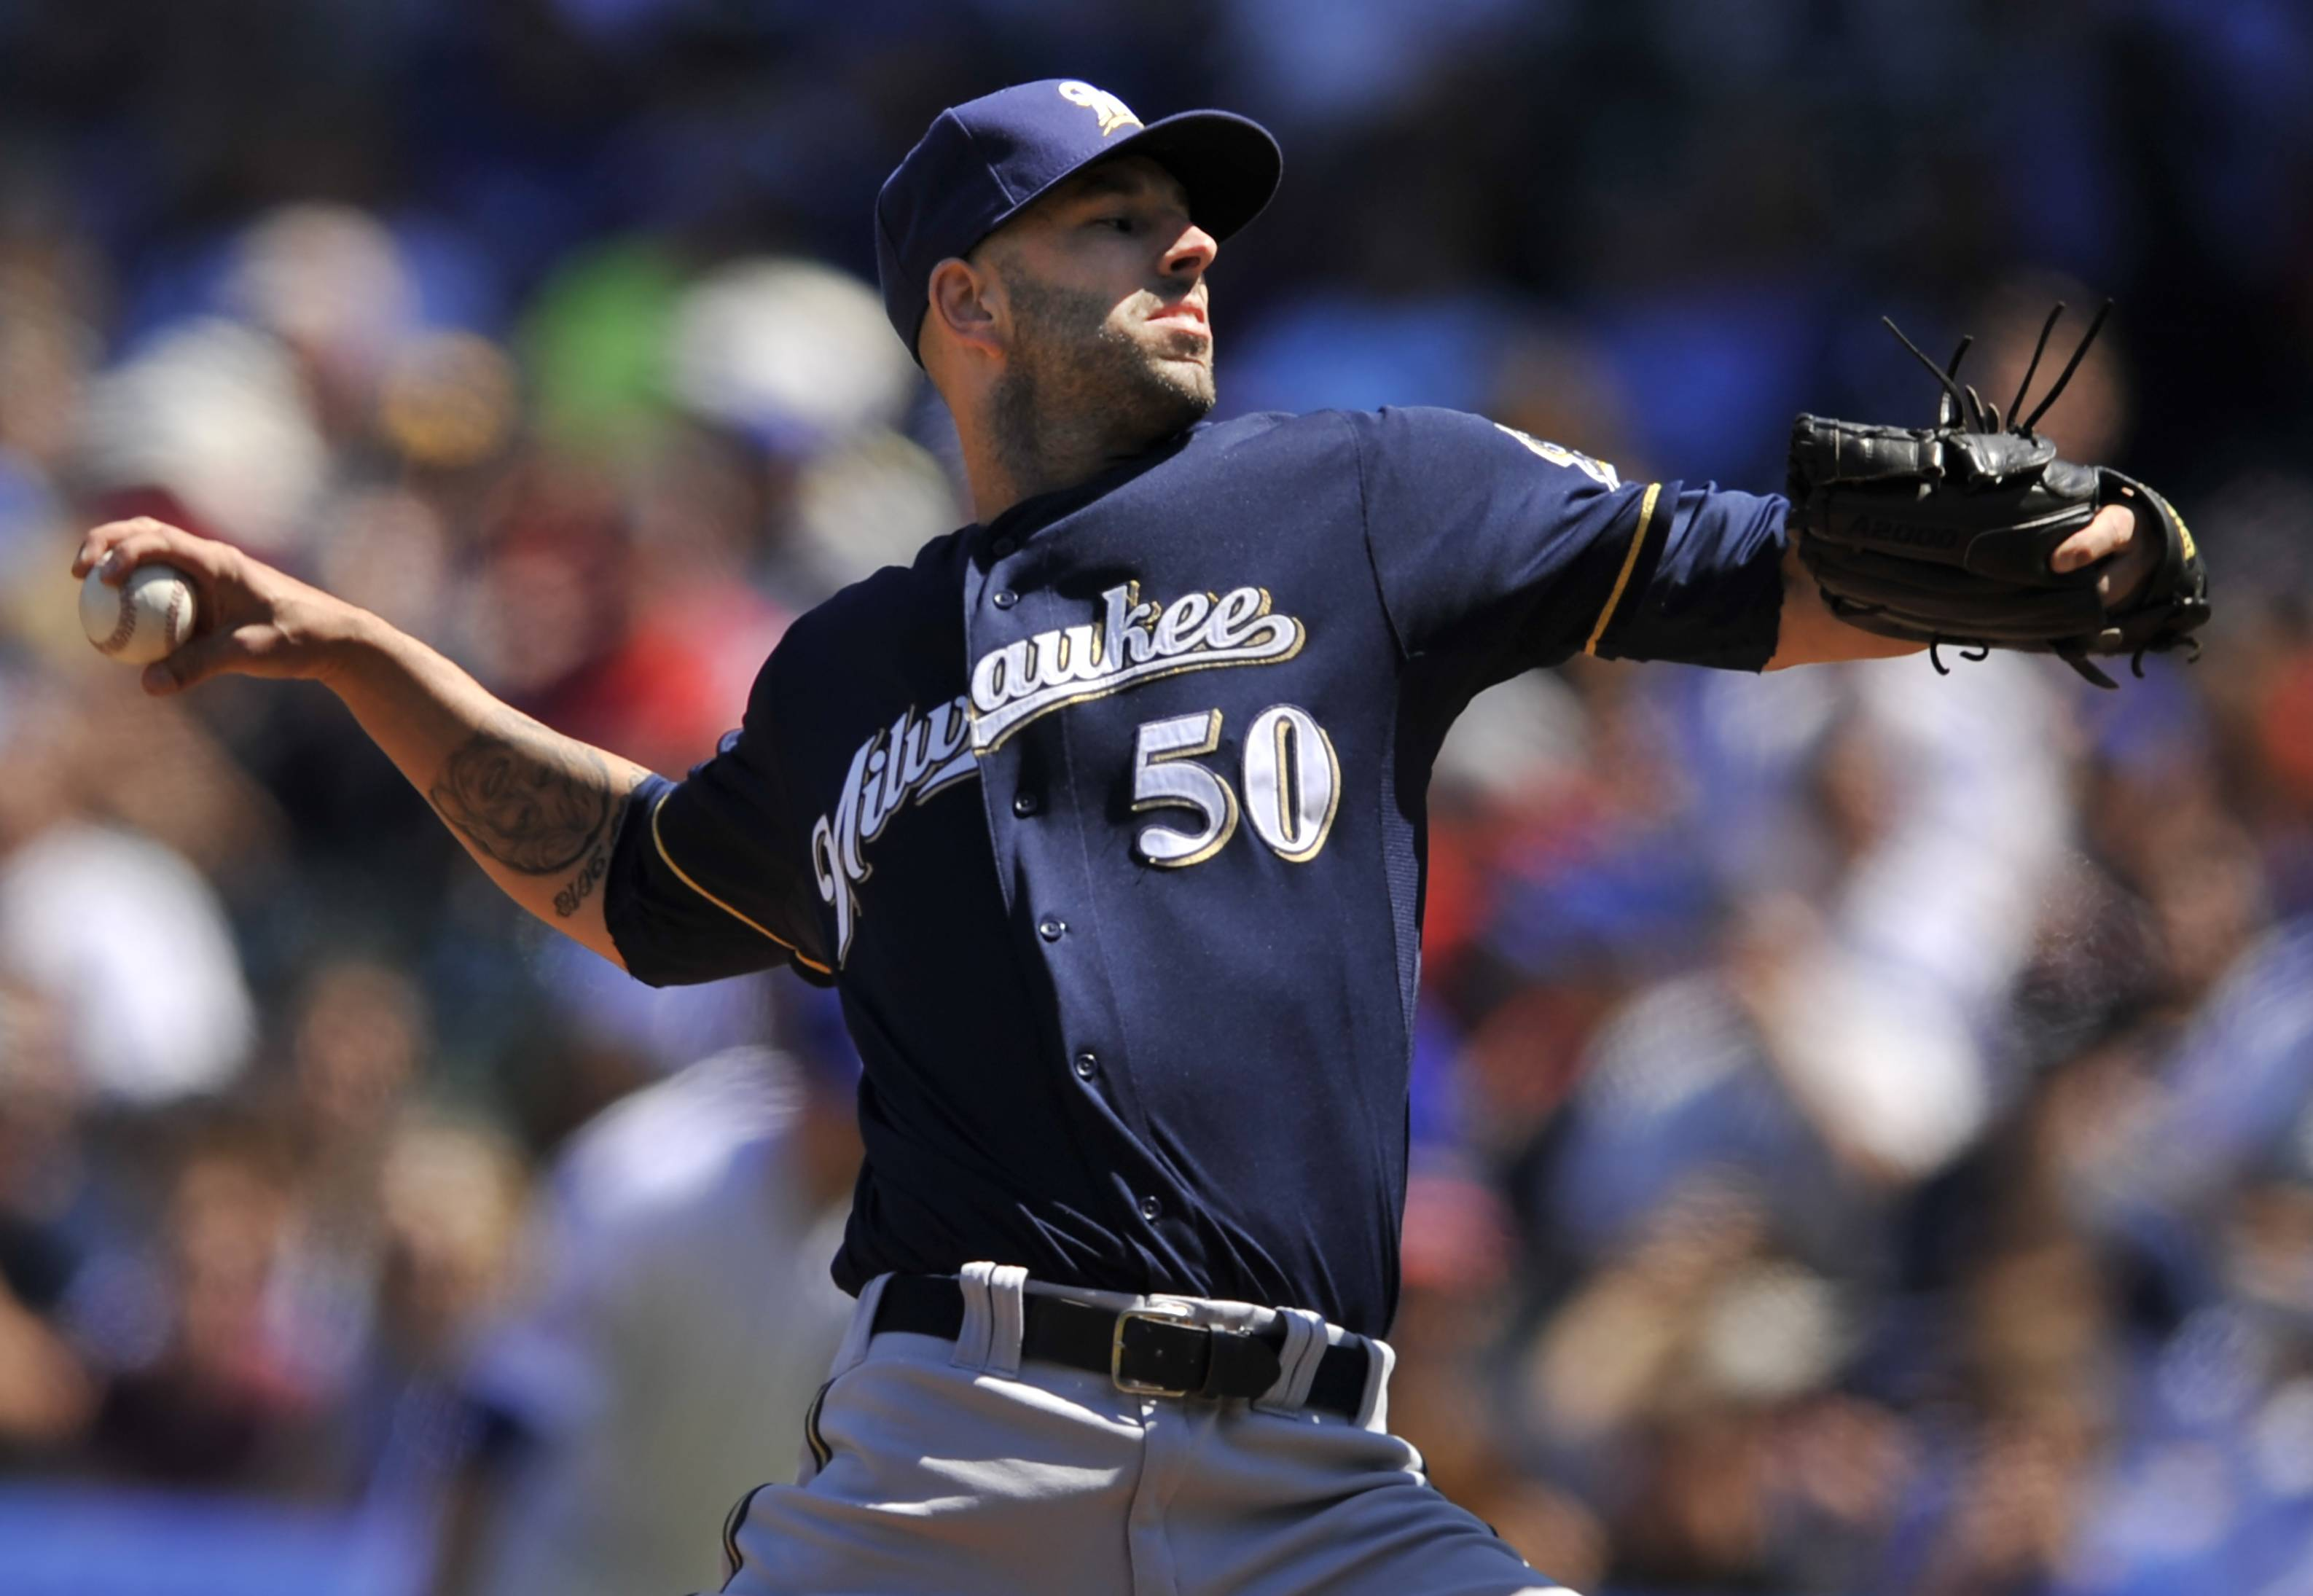 Milwaukee Brewers starter Mike Fiers delivers a pitch during the first inning of a baseball game against the Cubs in Chicago Thursday.